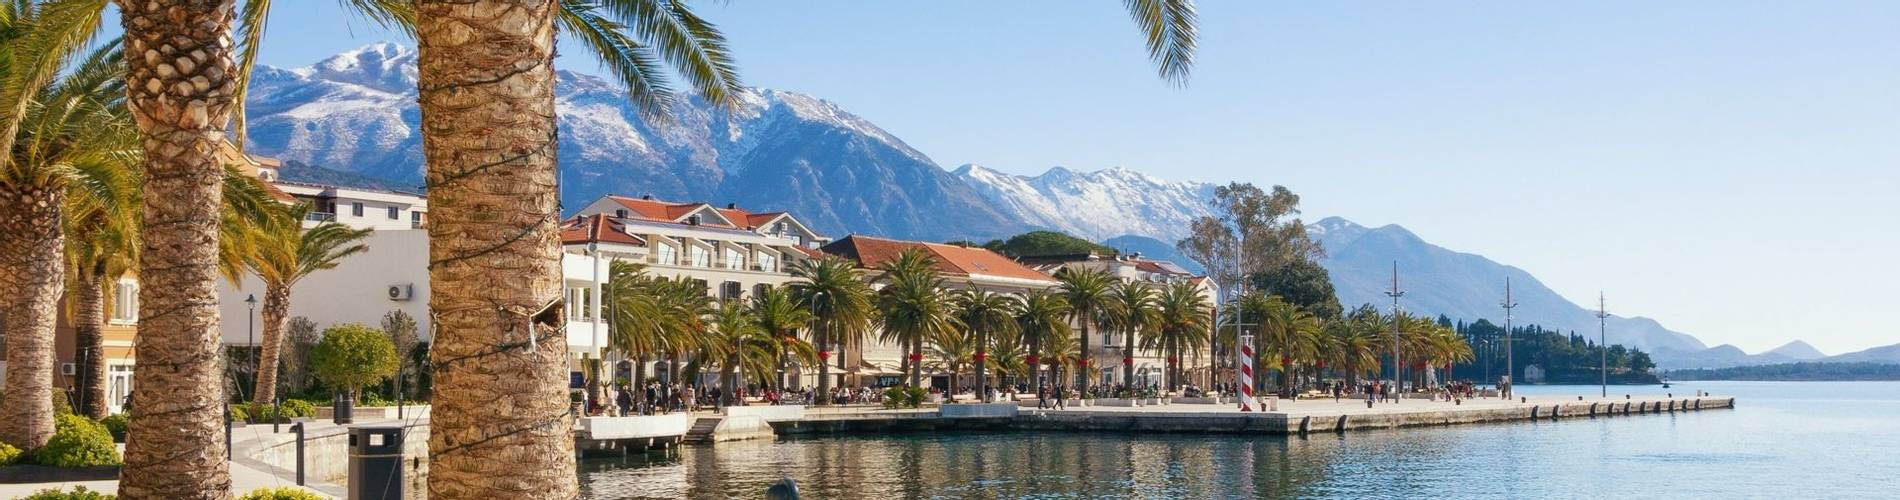 Embankment of Tivat town with Lovcen mountain in the background. Bay of Kotor(Adriatic Sea), Montenegro.jpg